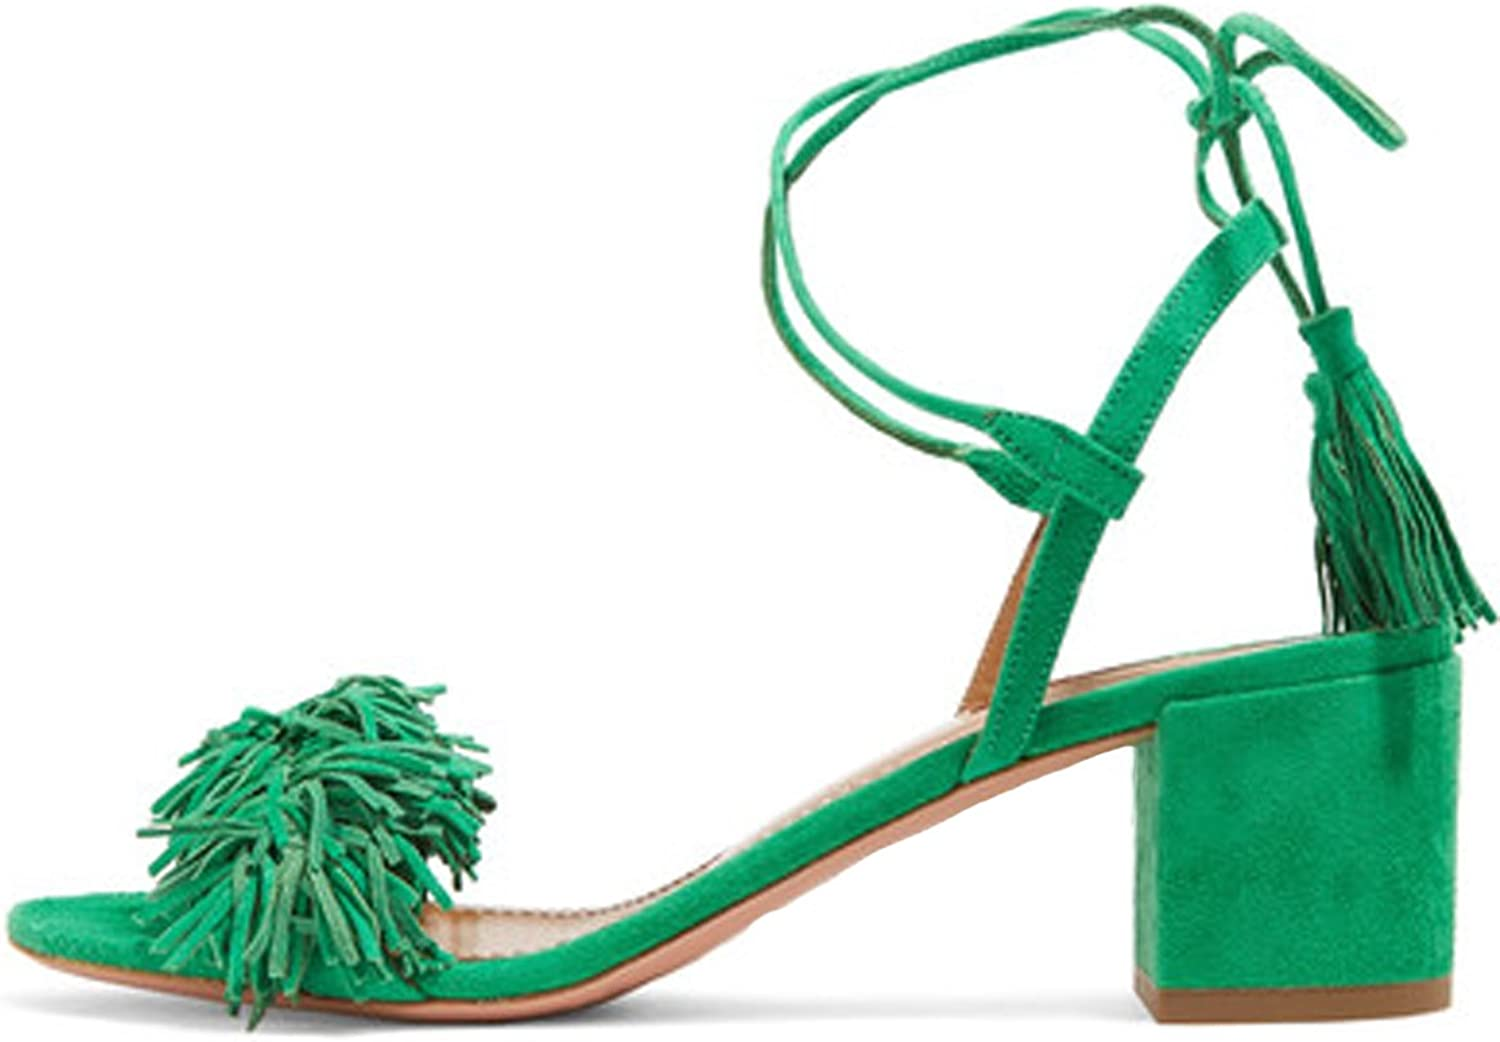 Comfity Block Heels for Women Women's Lace up Sandals Fringed Tassel shoes Ankle Ties Dress Sandals